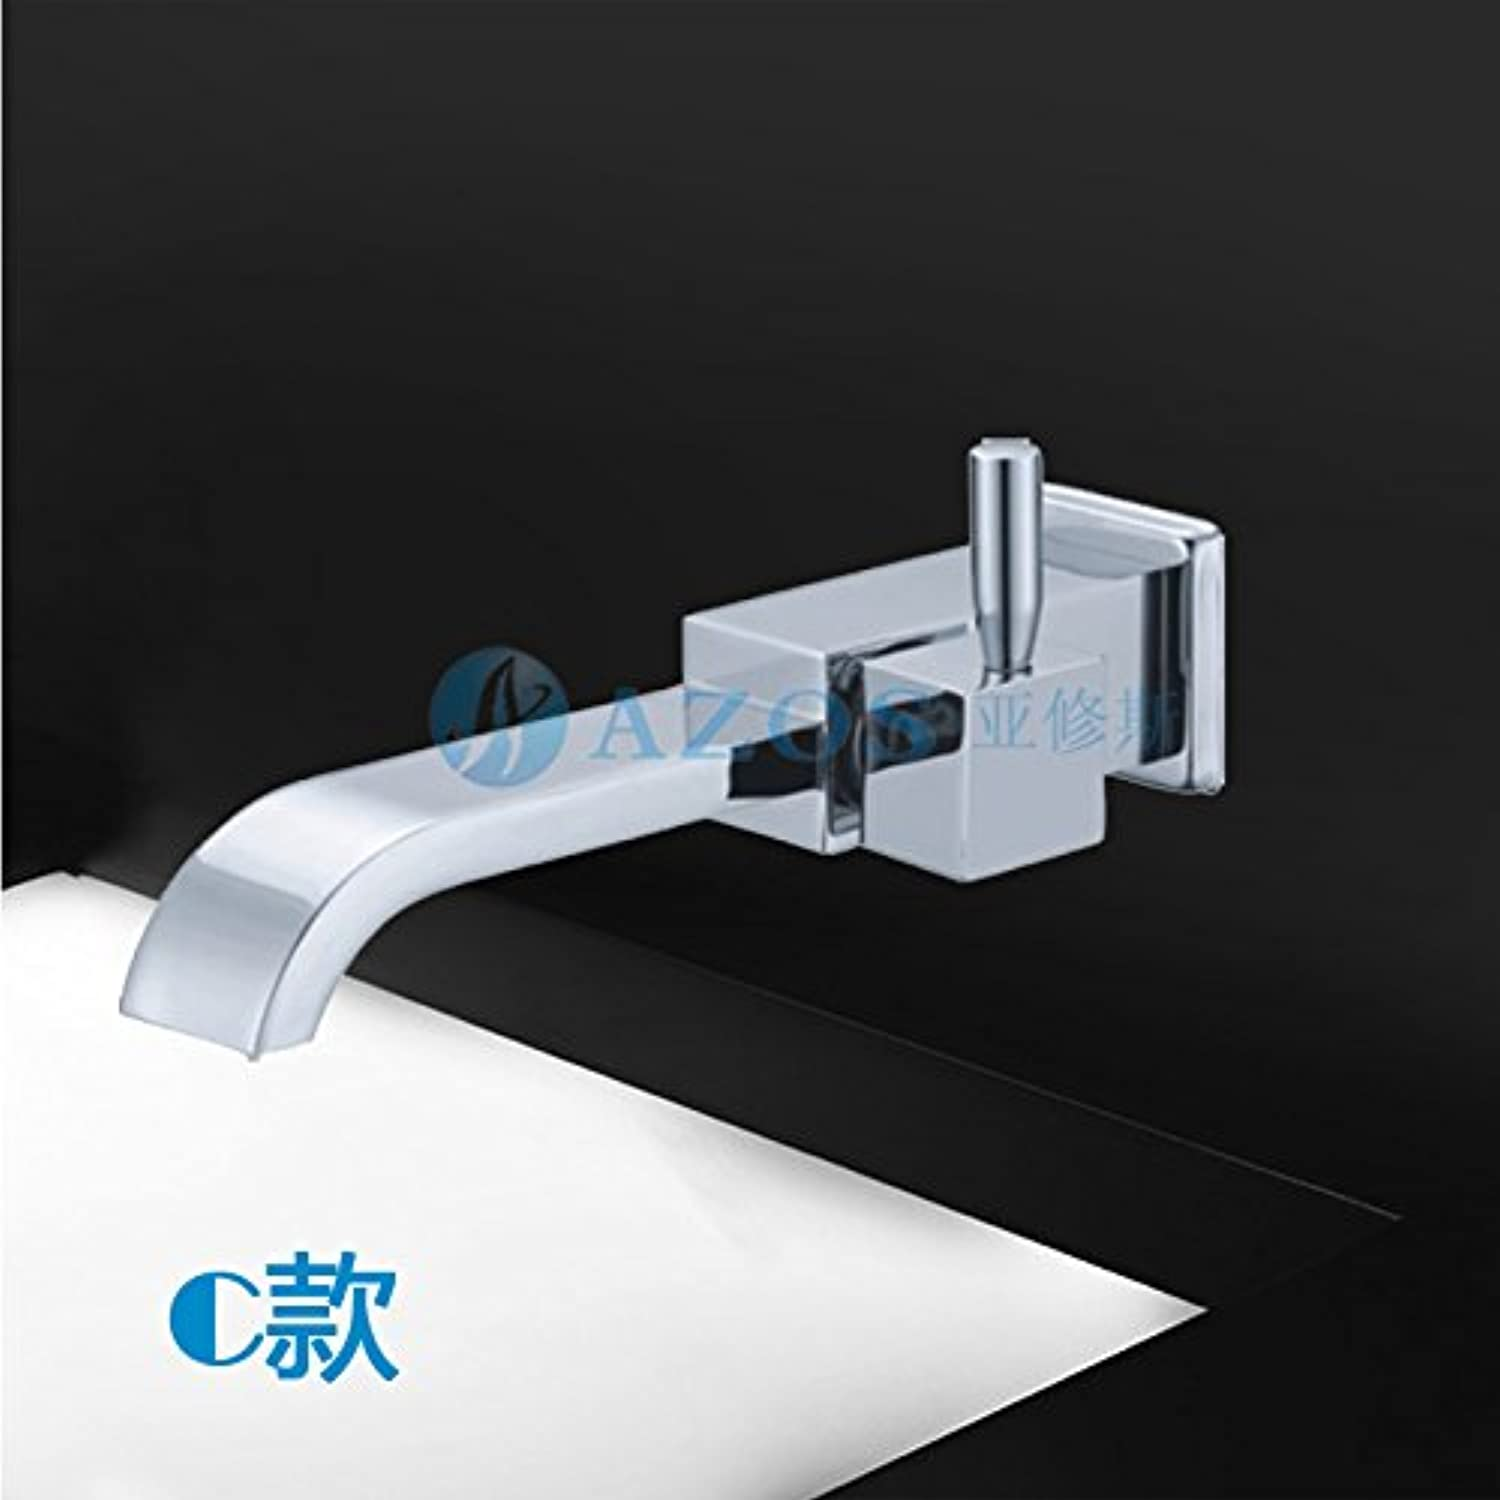 SADASD bathroom sink faucet Modern Upscale Boutique Brass Tap?The Wall Around The Copper Hot and Cold Basin Waterfall Faucet